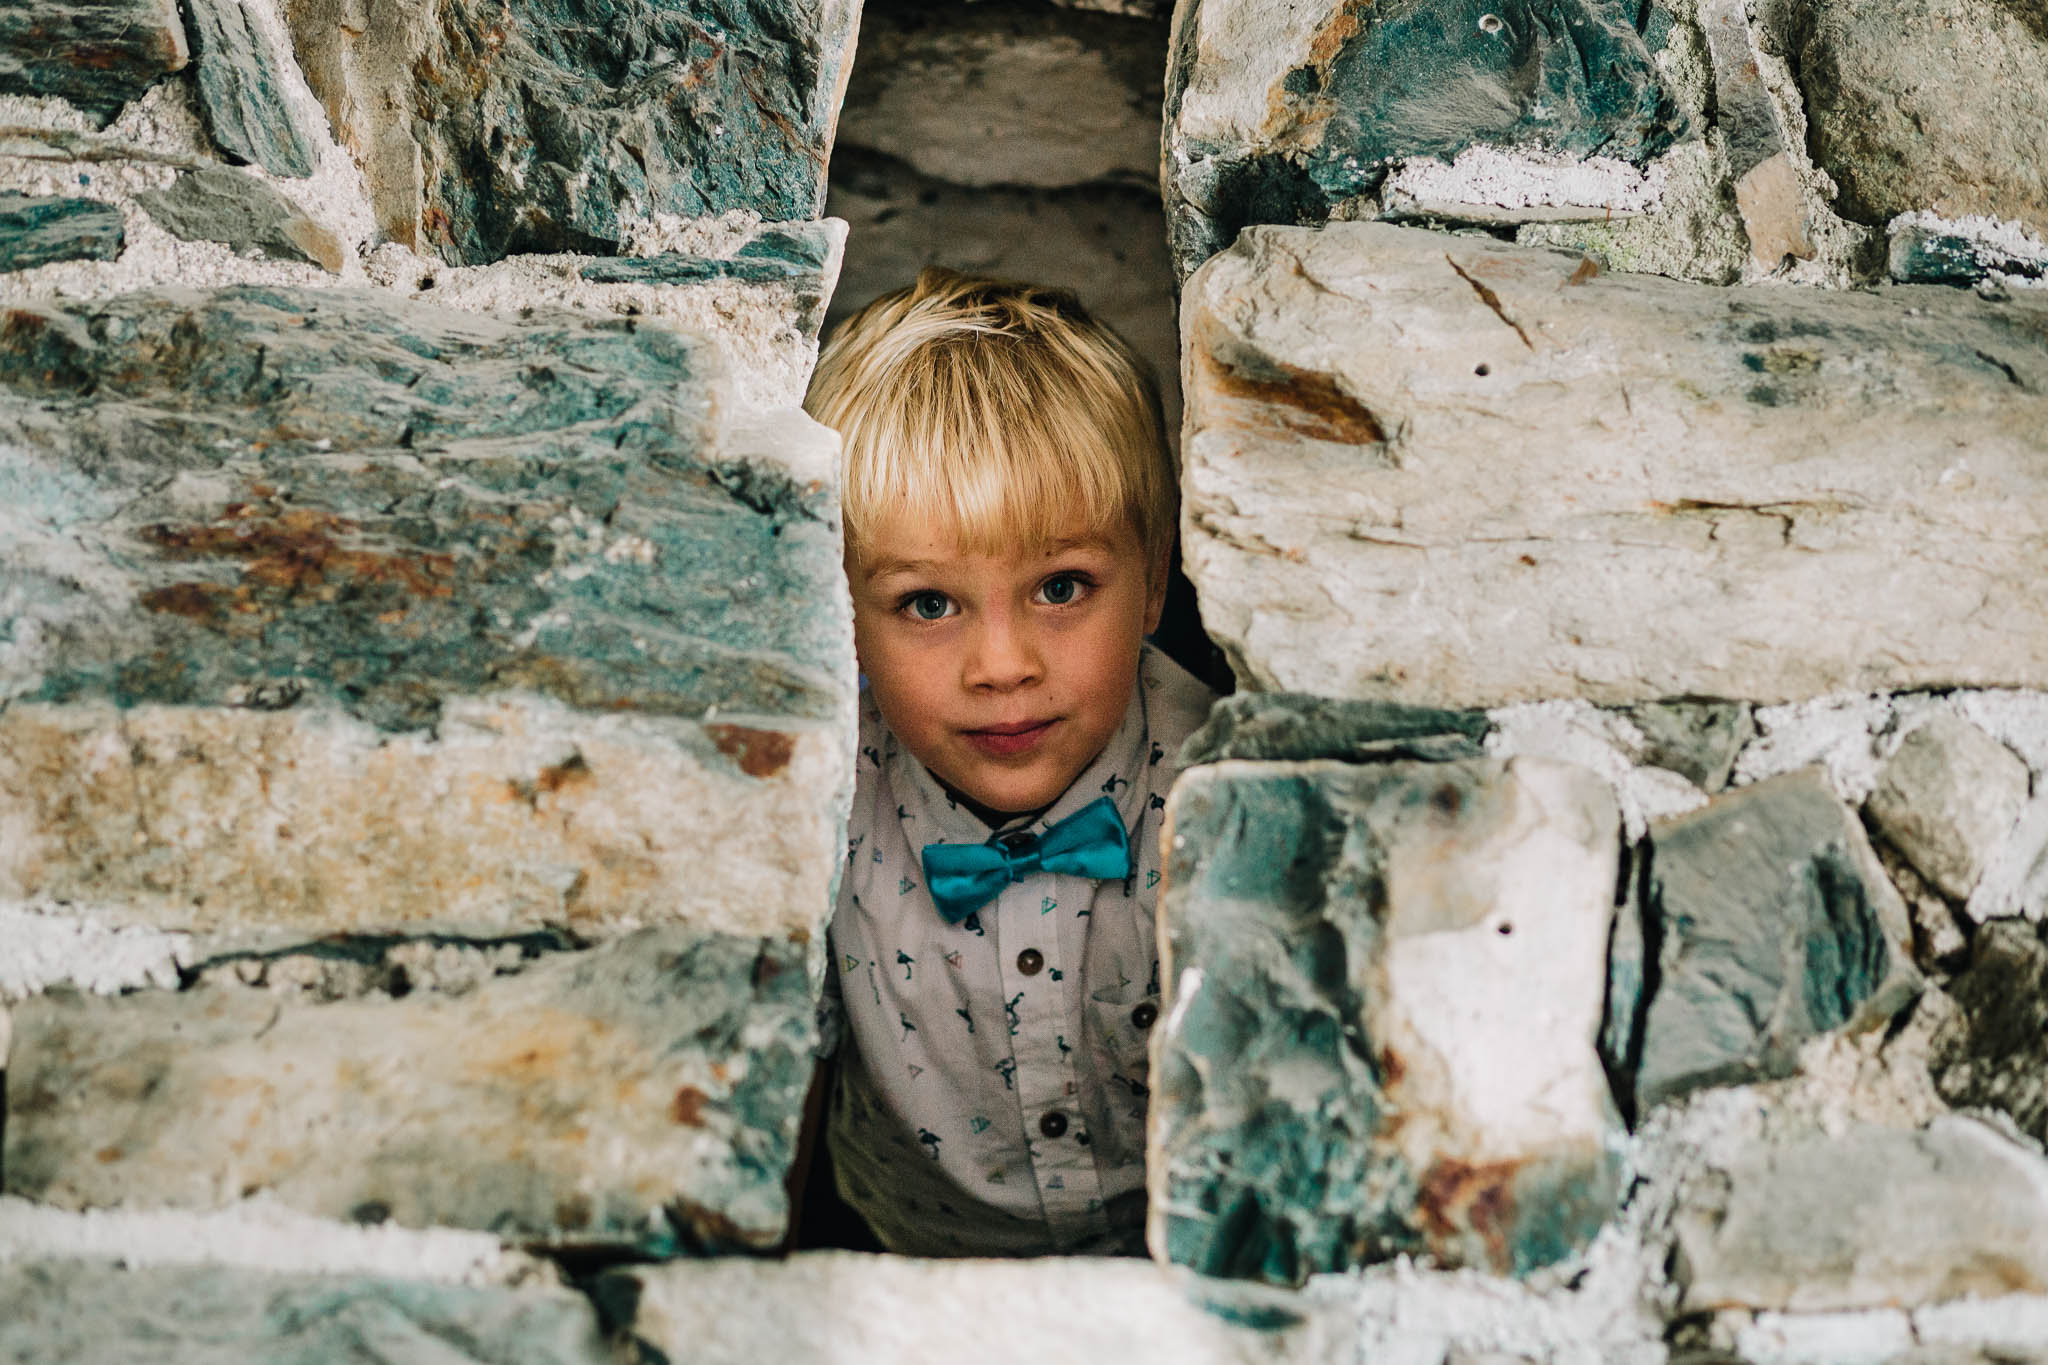 CHEEKY BLONDE BOY PEERING THROUGH GAP IN BARN WALL